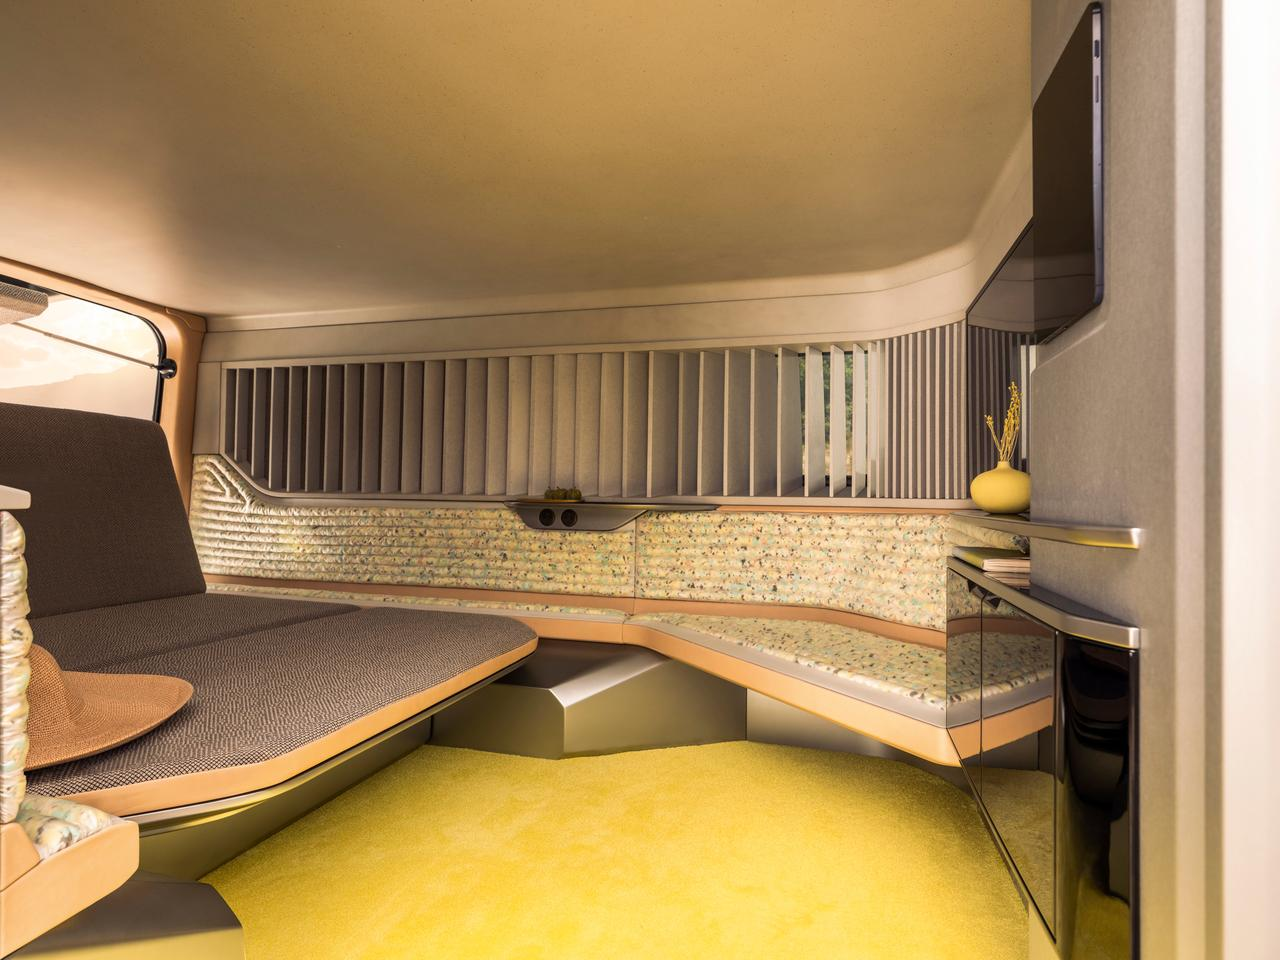 With its walled off camper cabin, the Hippie Caviar Hotel feels like it could be a chauffeured vehicle, living up to its five-star billing, but we're not sure it has rear drive seats